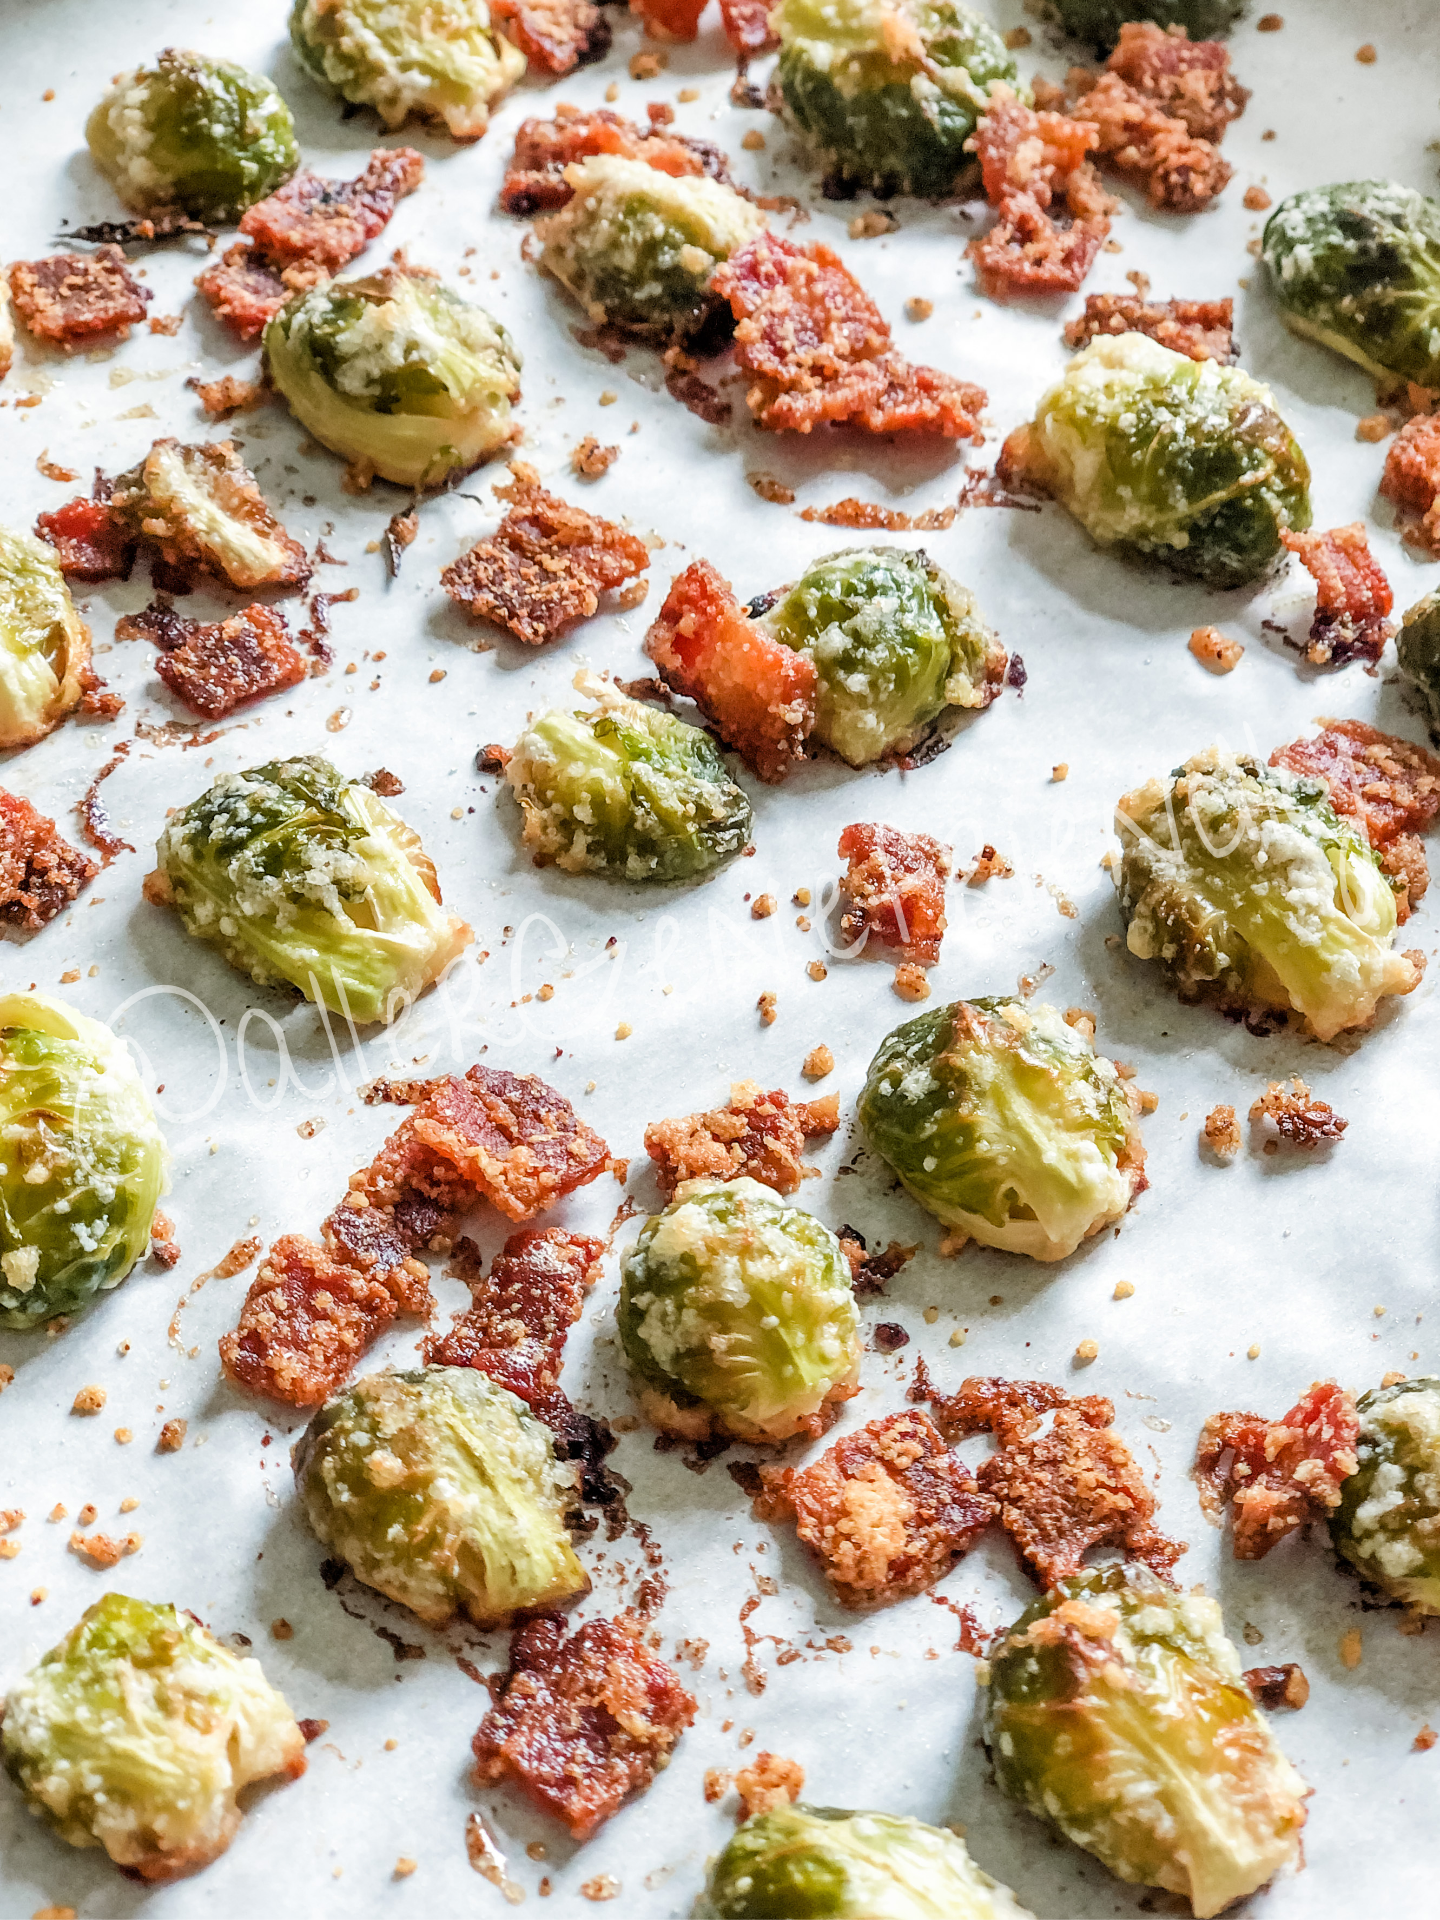 oven-roasted bacon parmesan brussels sprouts